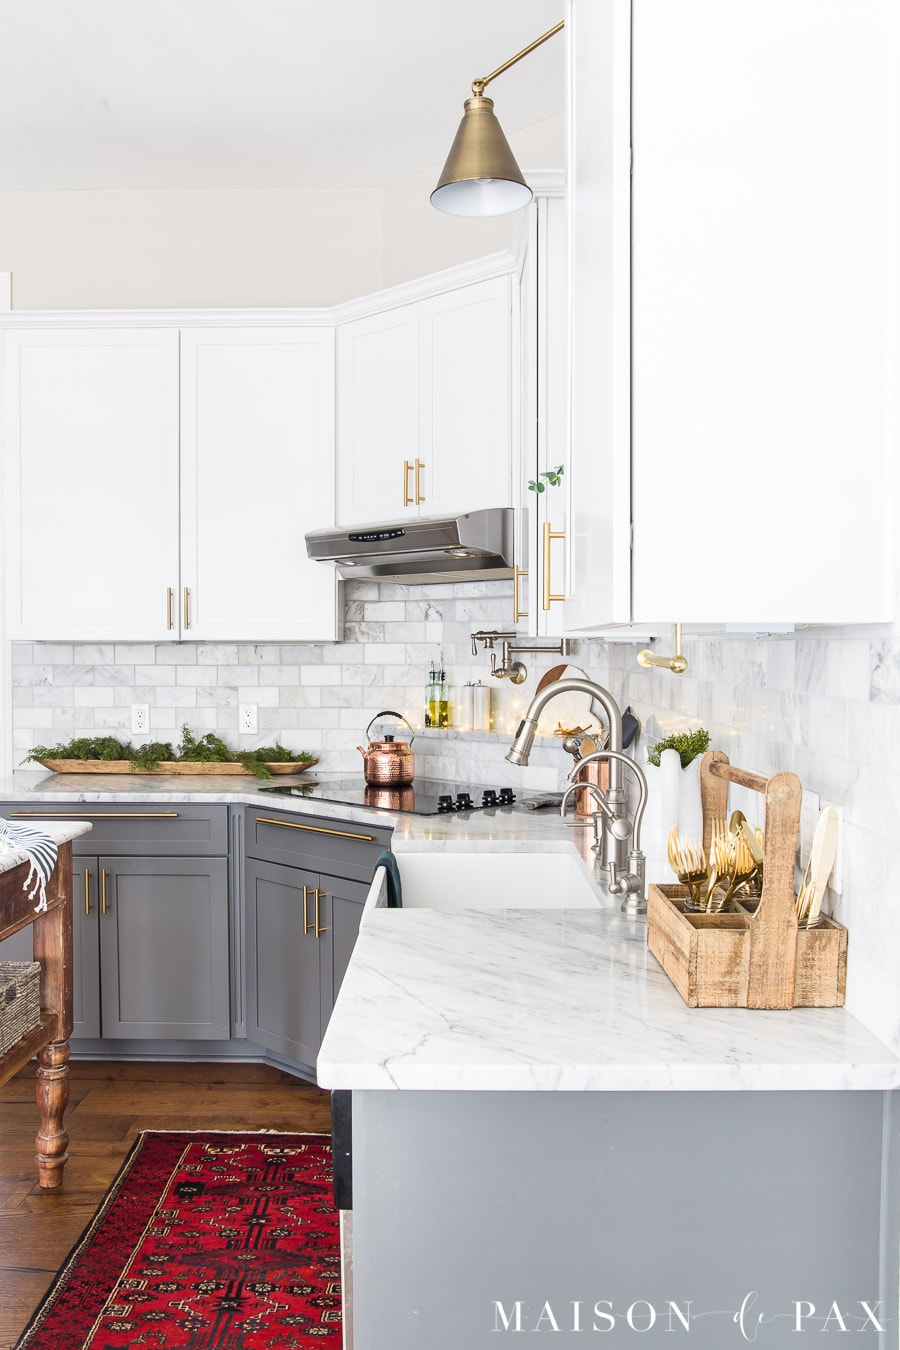 marble countertops and two tone cabinets with Agreeable Gray walls | Maison de Pax